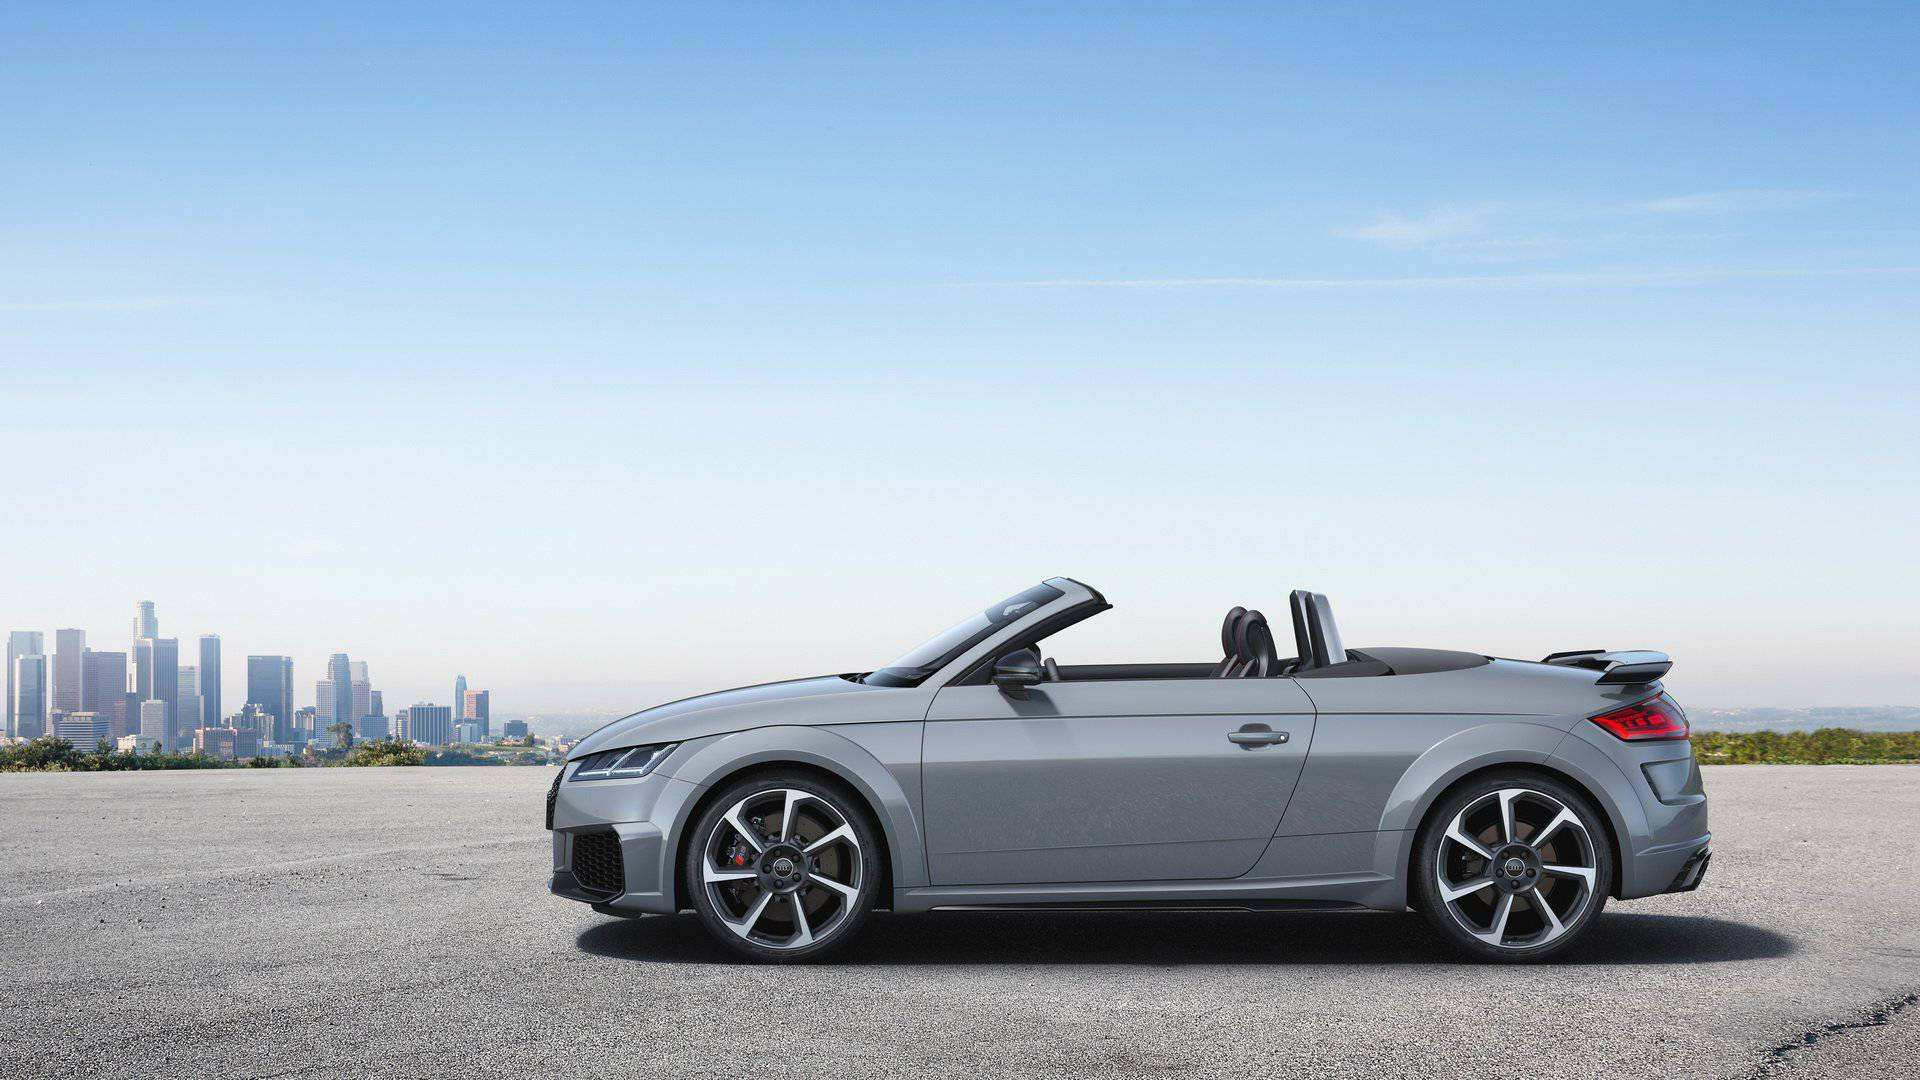 40 New Audi Tt Convertible 2020 New Review by Audi Tt Convertible 2020